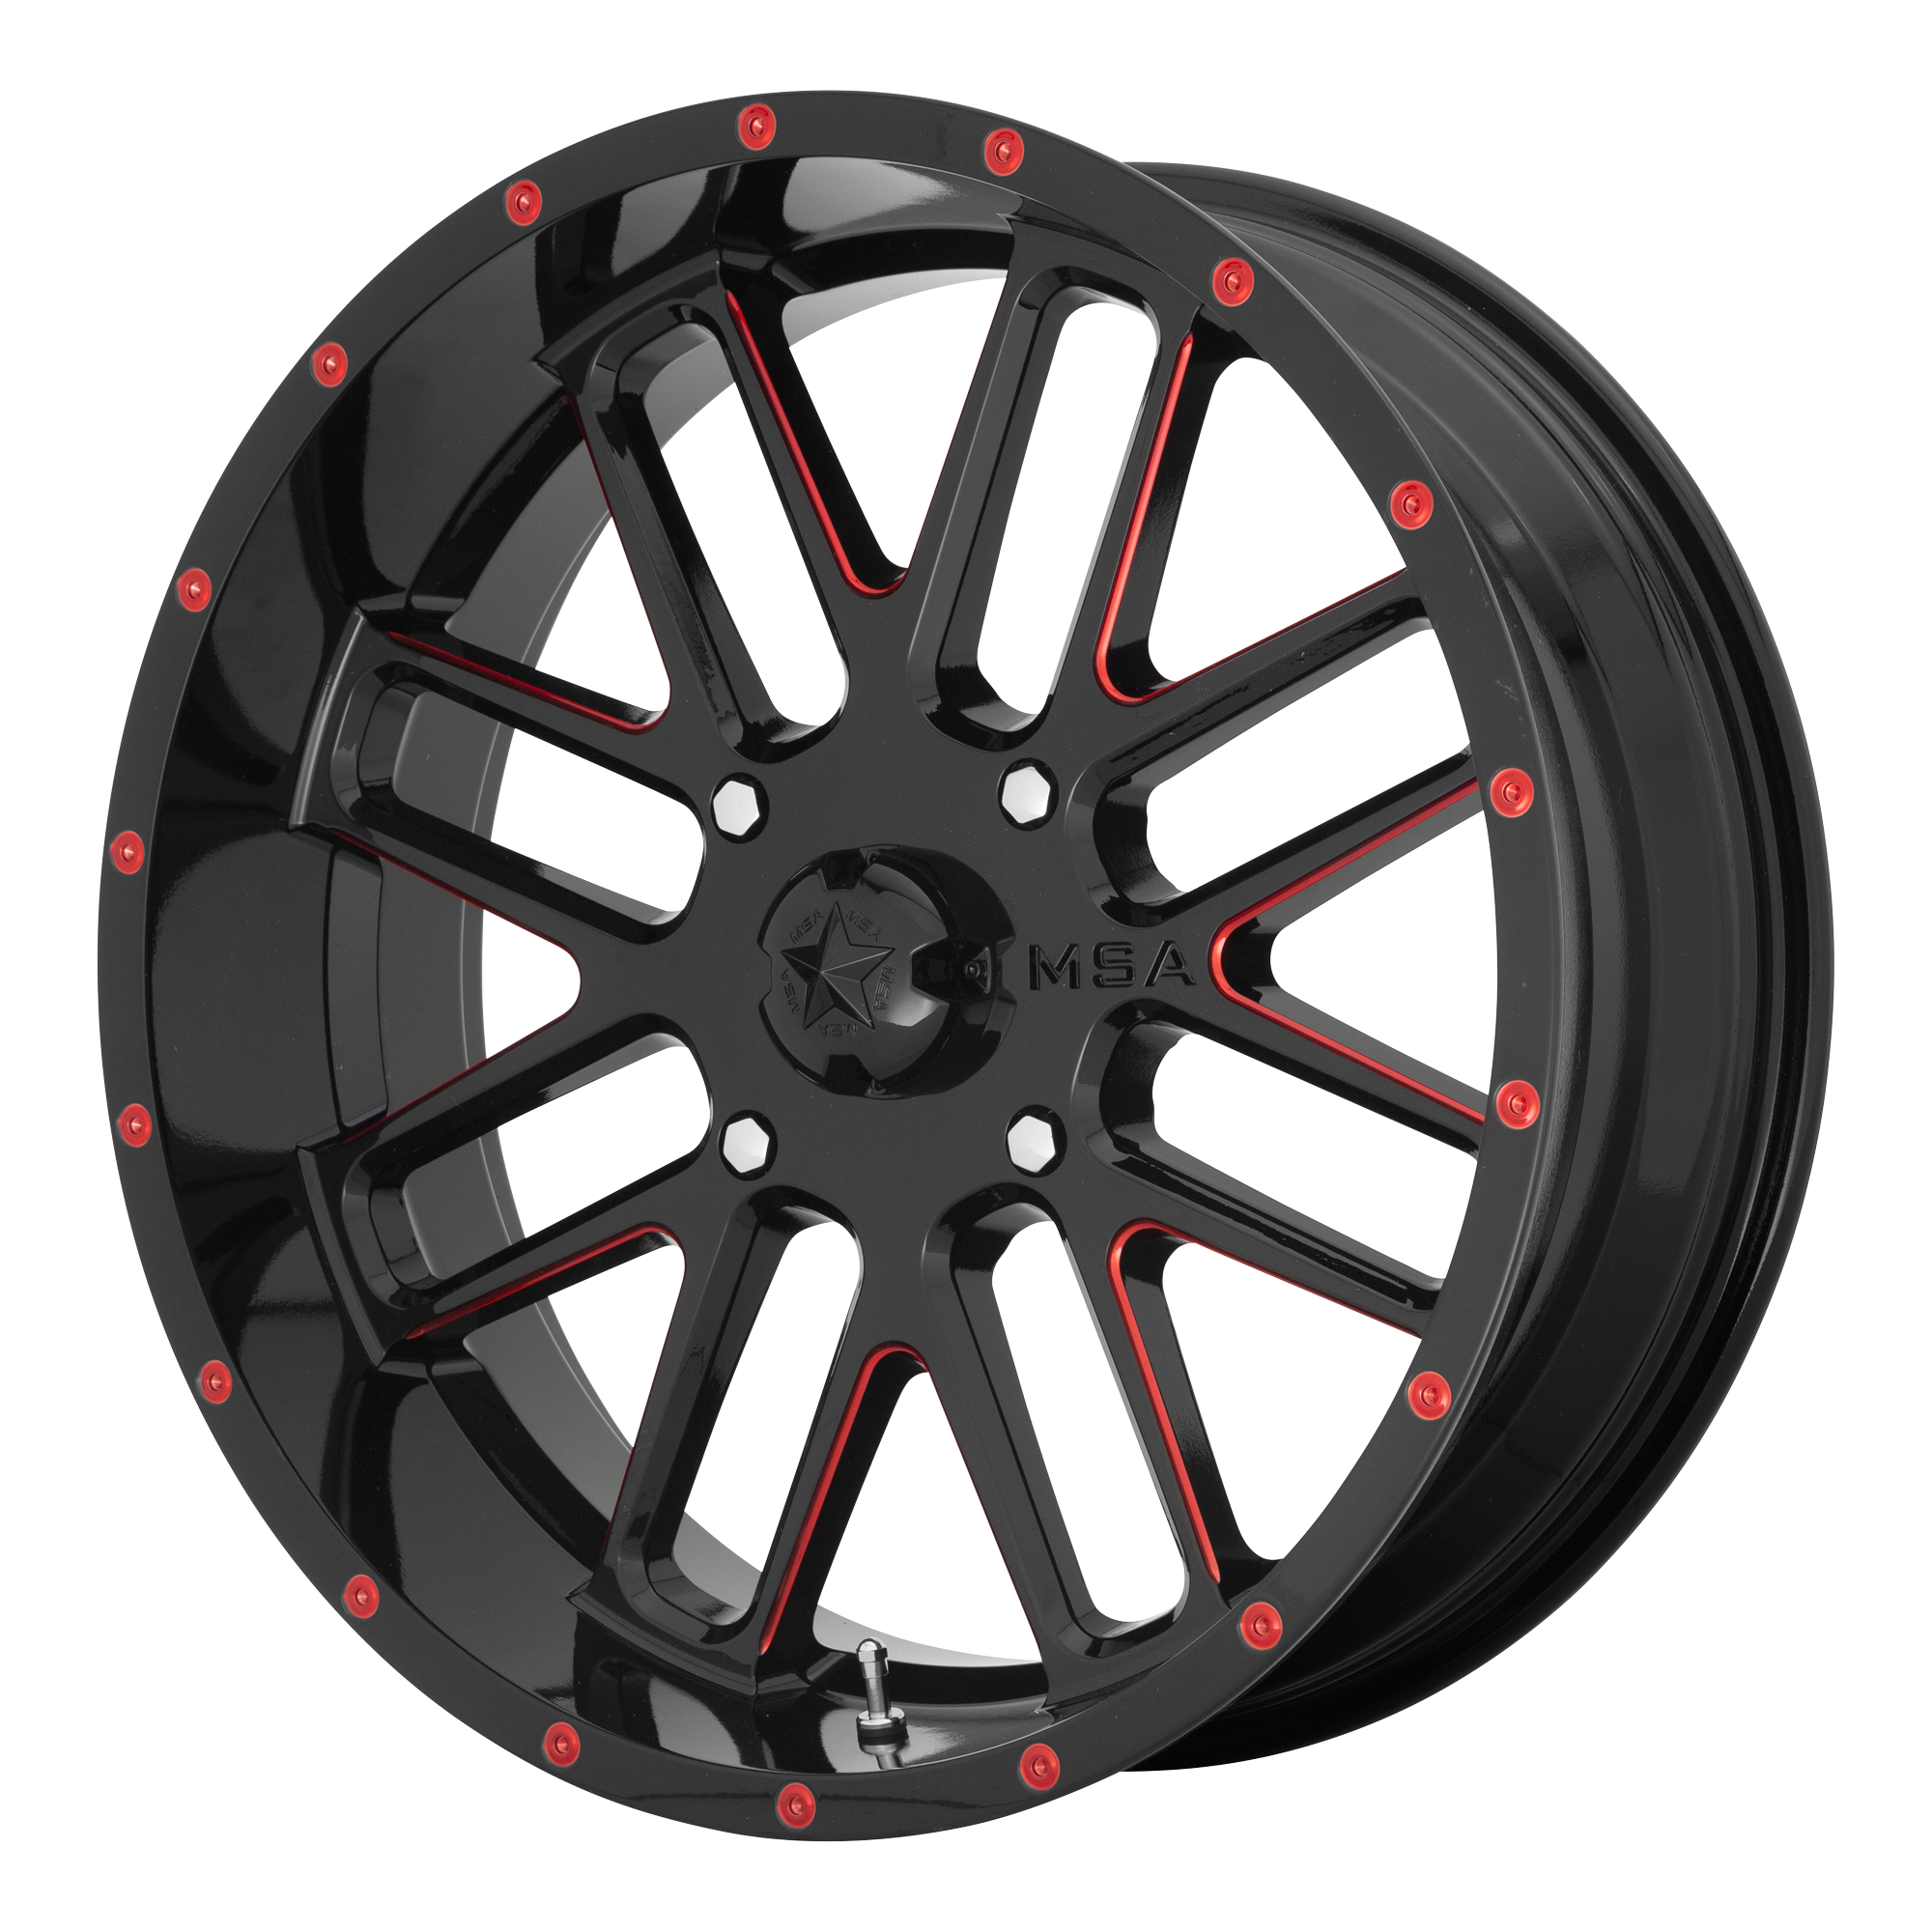 MSA OFFROAD WHEELS BANDIT GLOSS BLACK MILLED W/ RED TINT